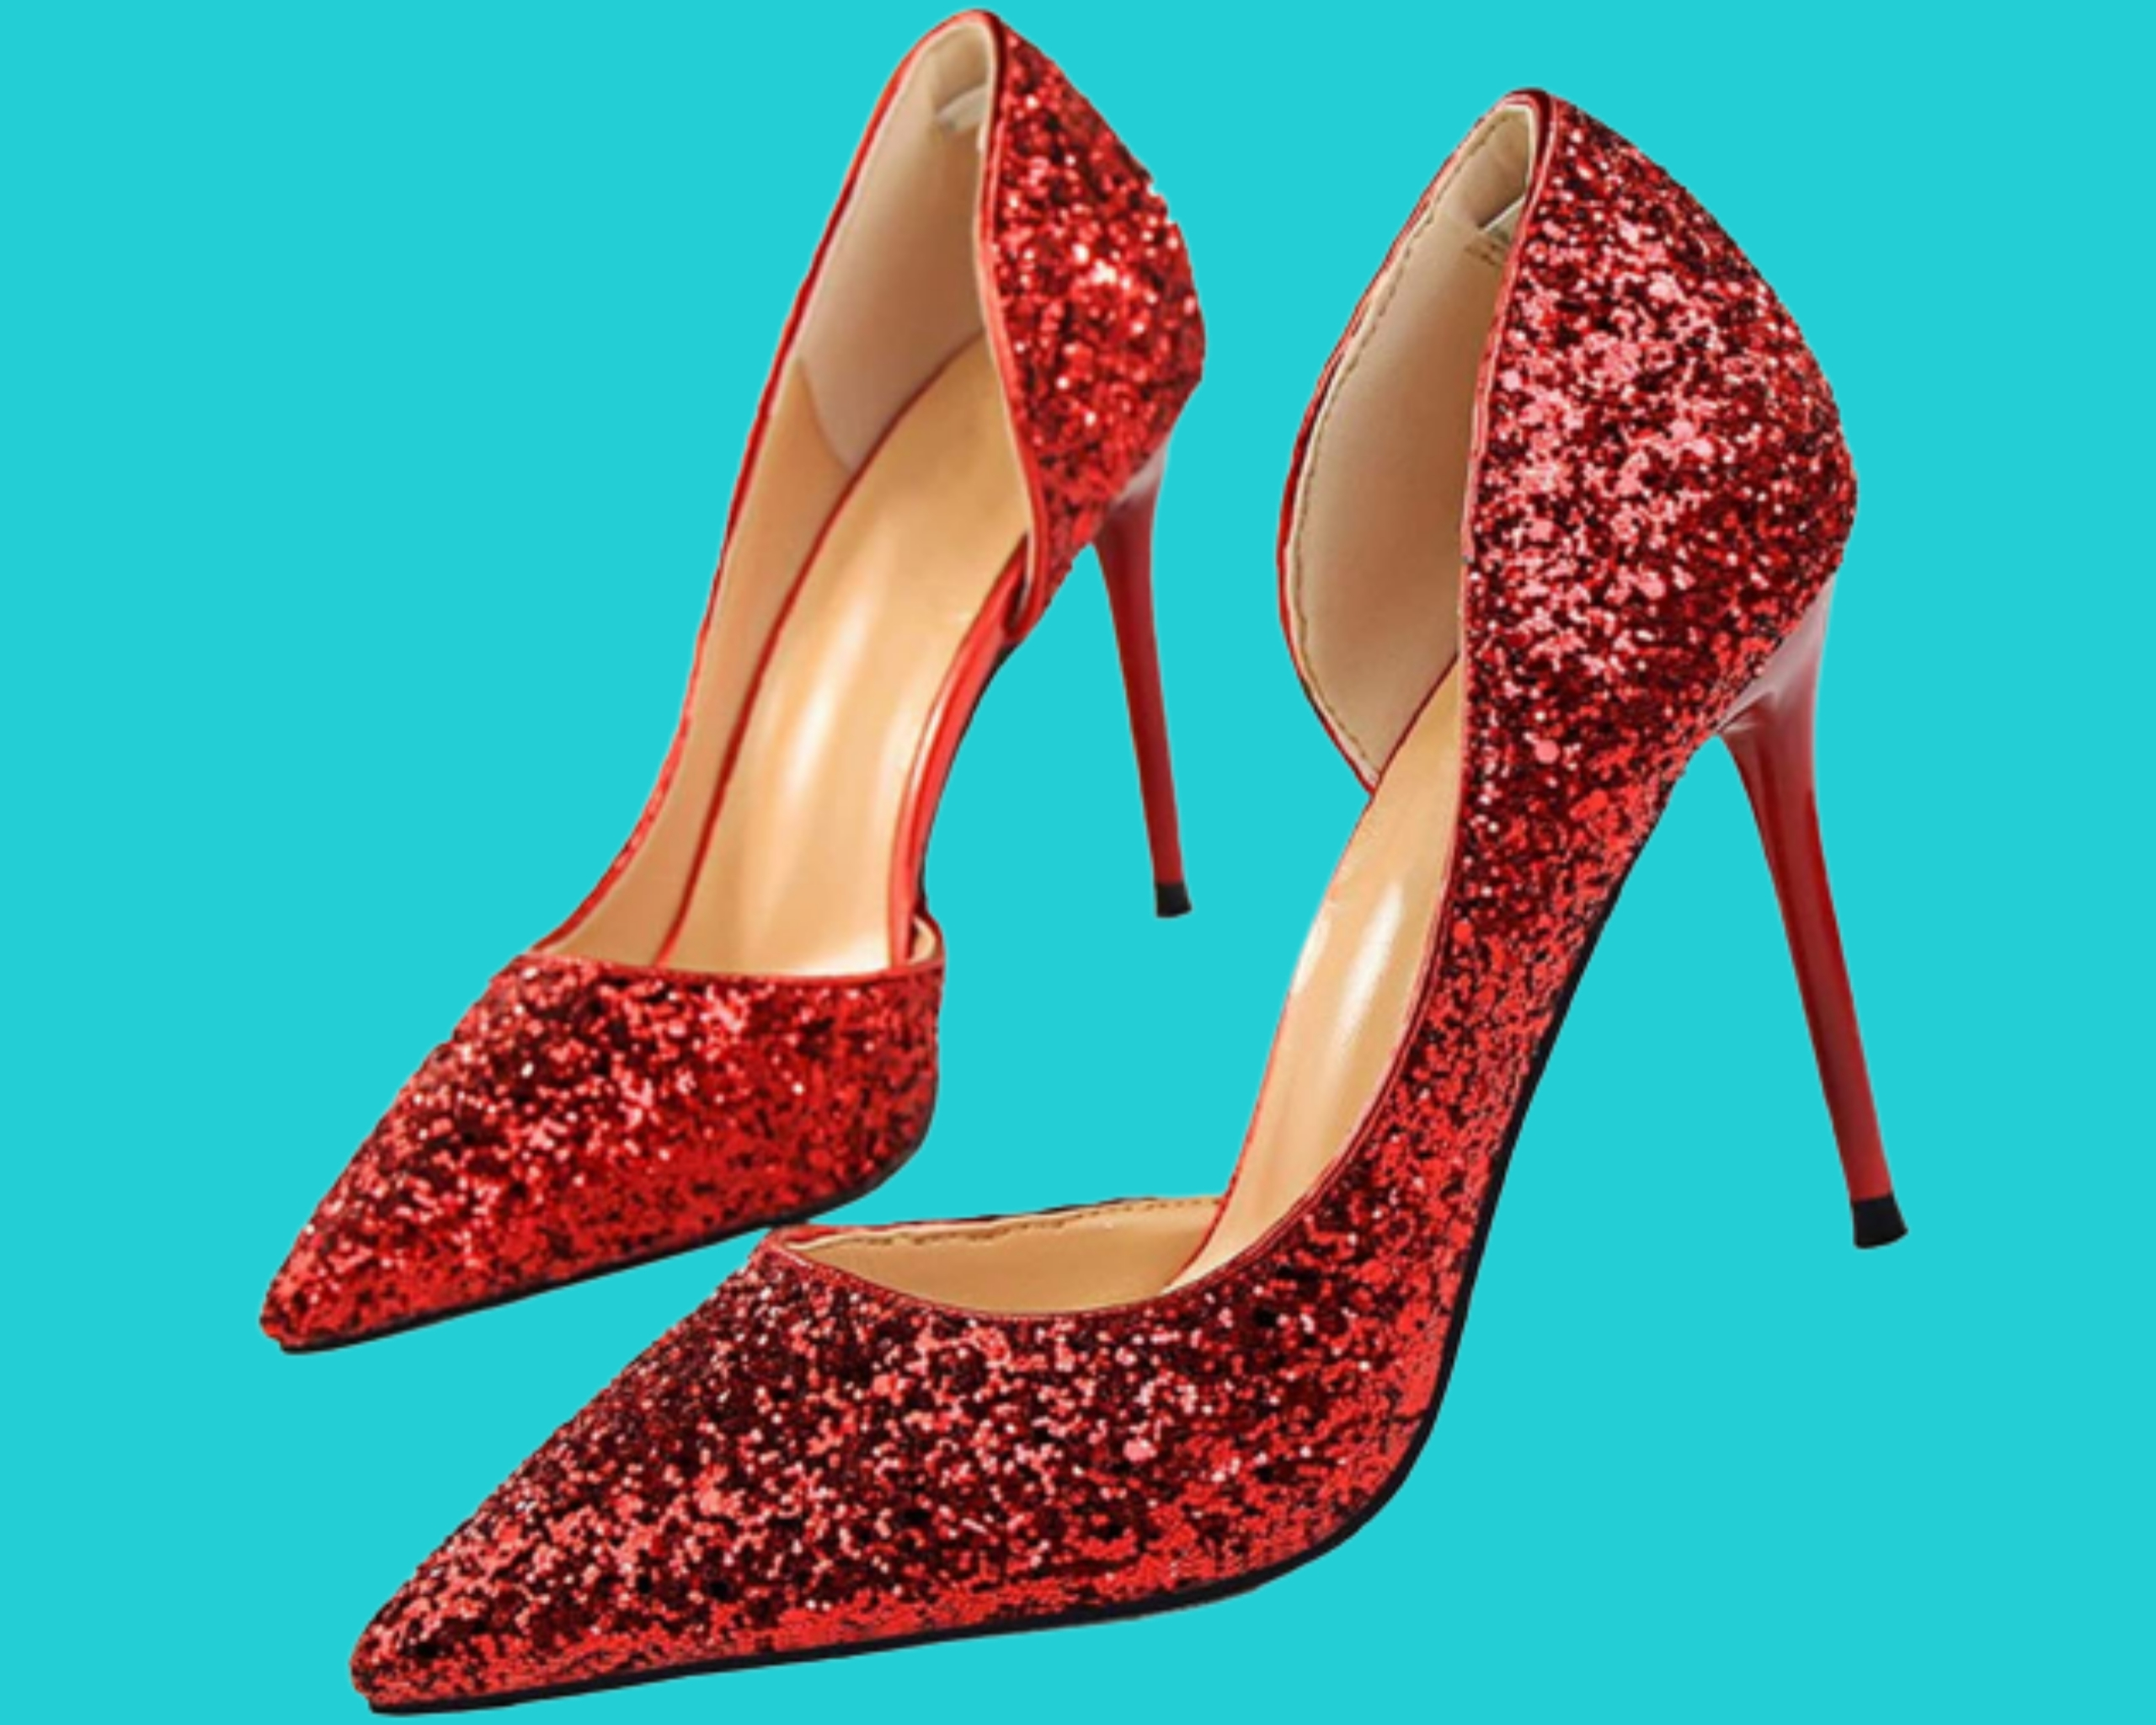 Comfortable stiletto for party